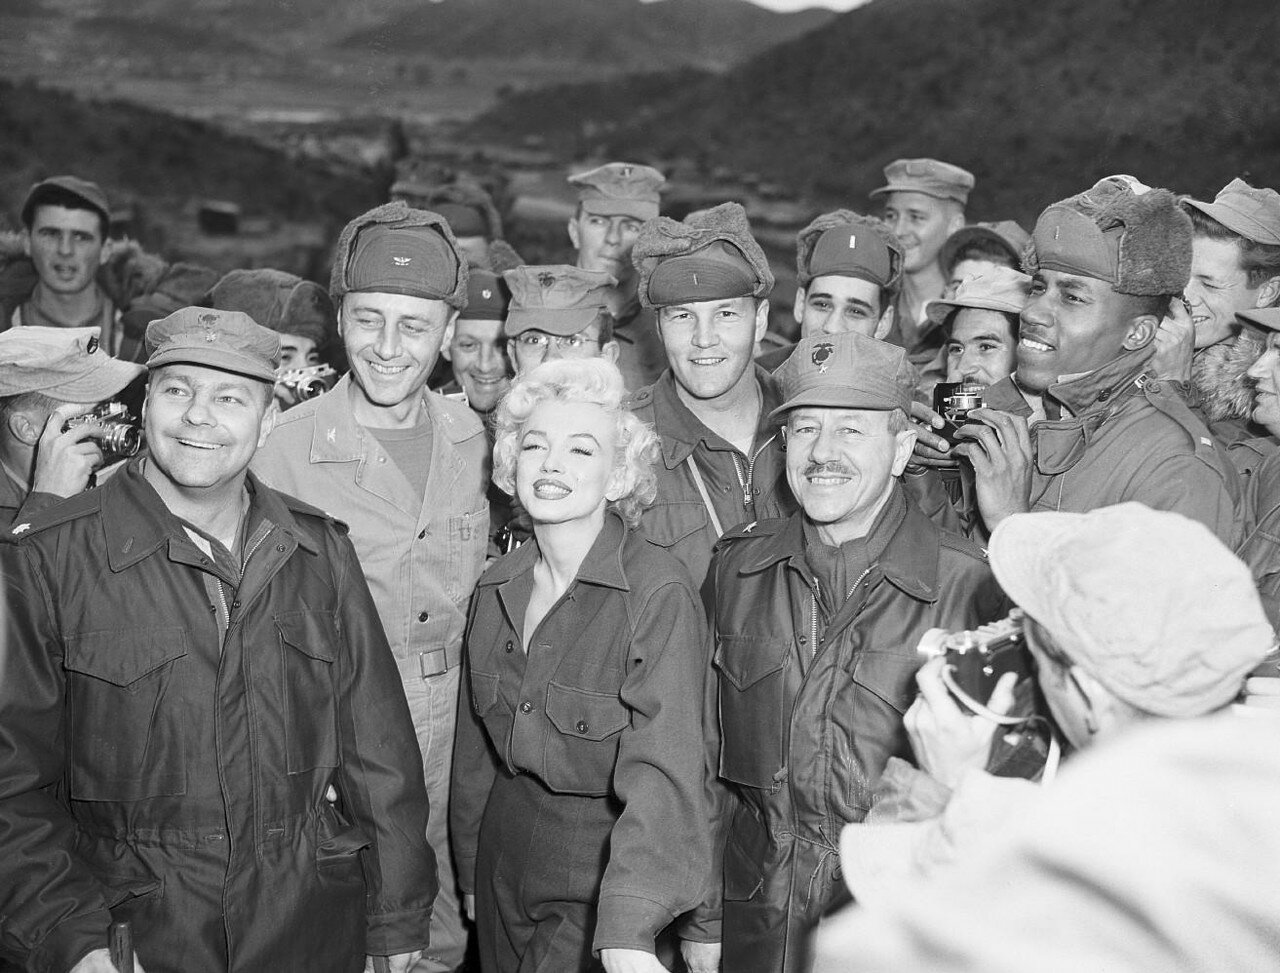 Marilyn Monroe with the Marines